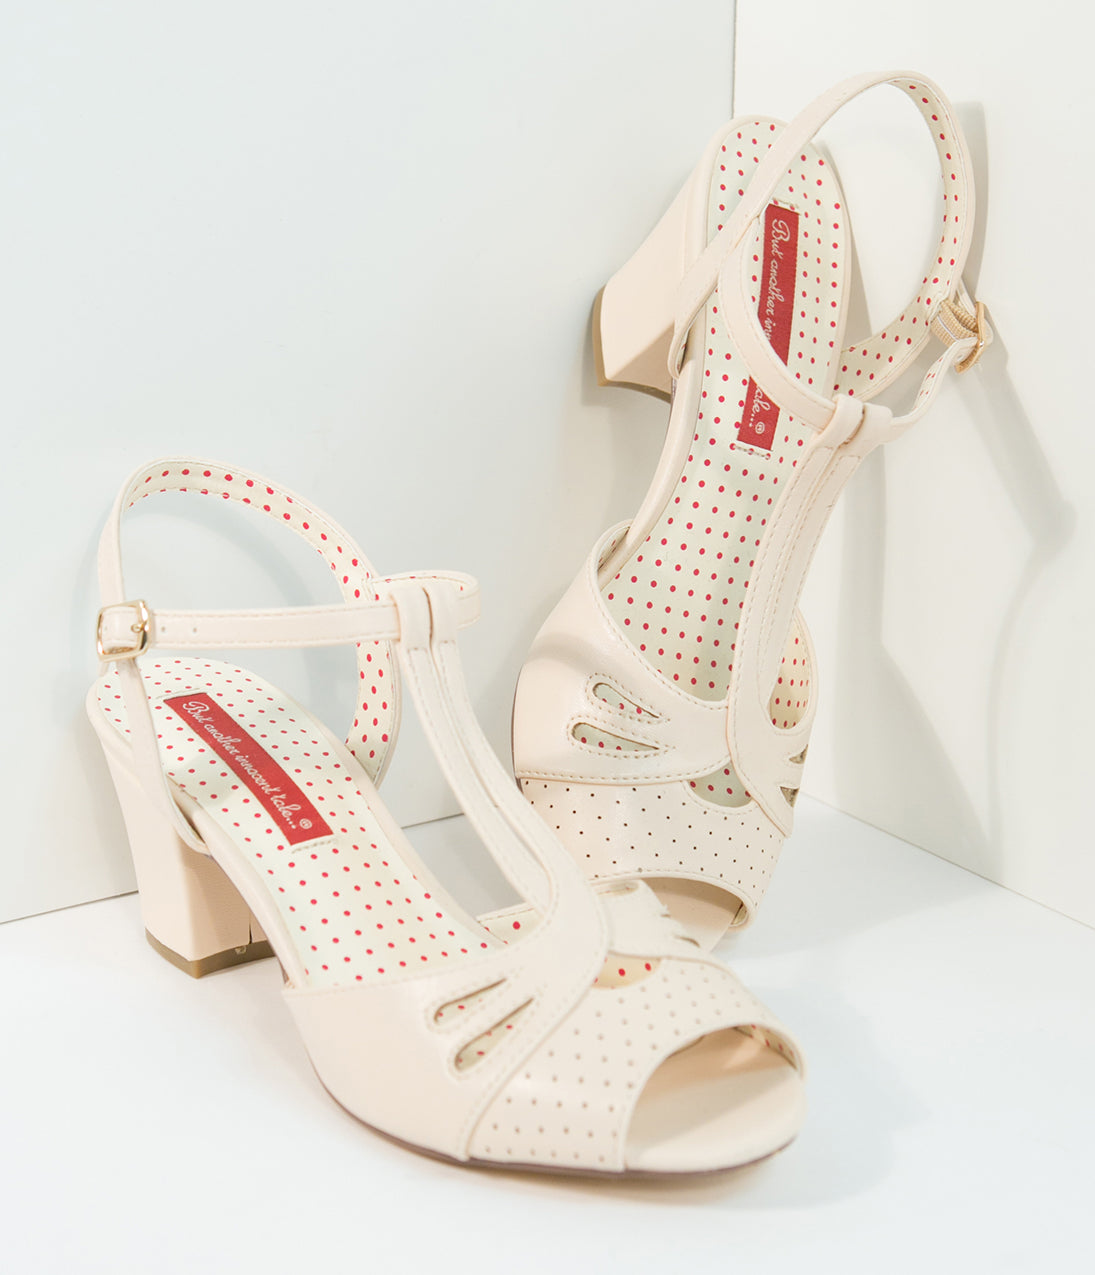 1950s Style Shoes B.a.i.t. 1940S Cream Blush Reanna T-Strap Heels $72.00 AT vintagedancer.com